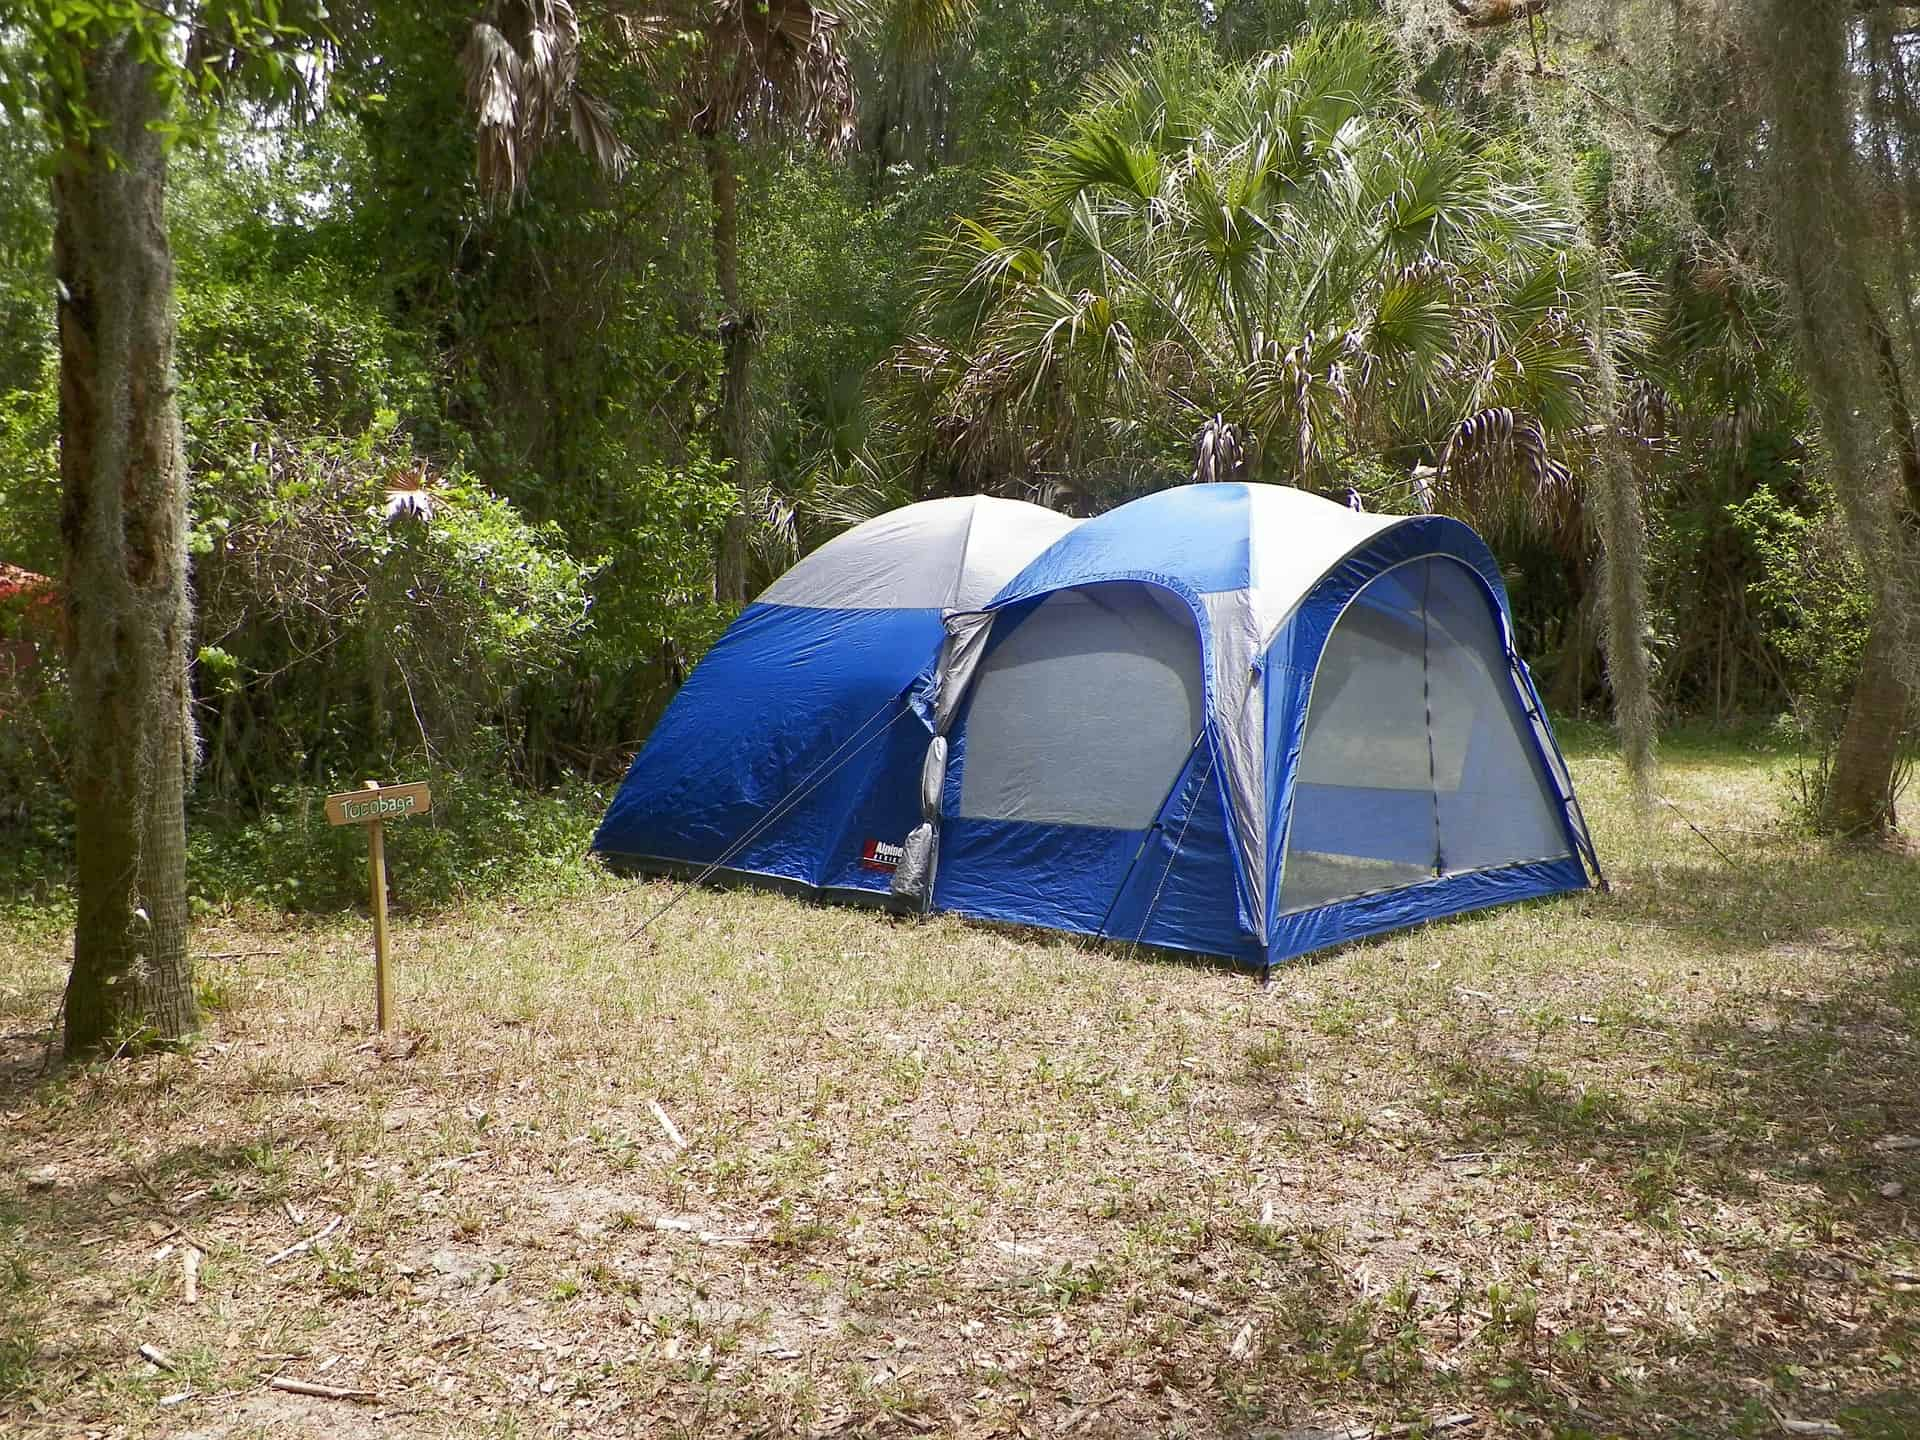 Camping Tents: Things To Consider Before Buying